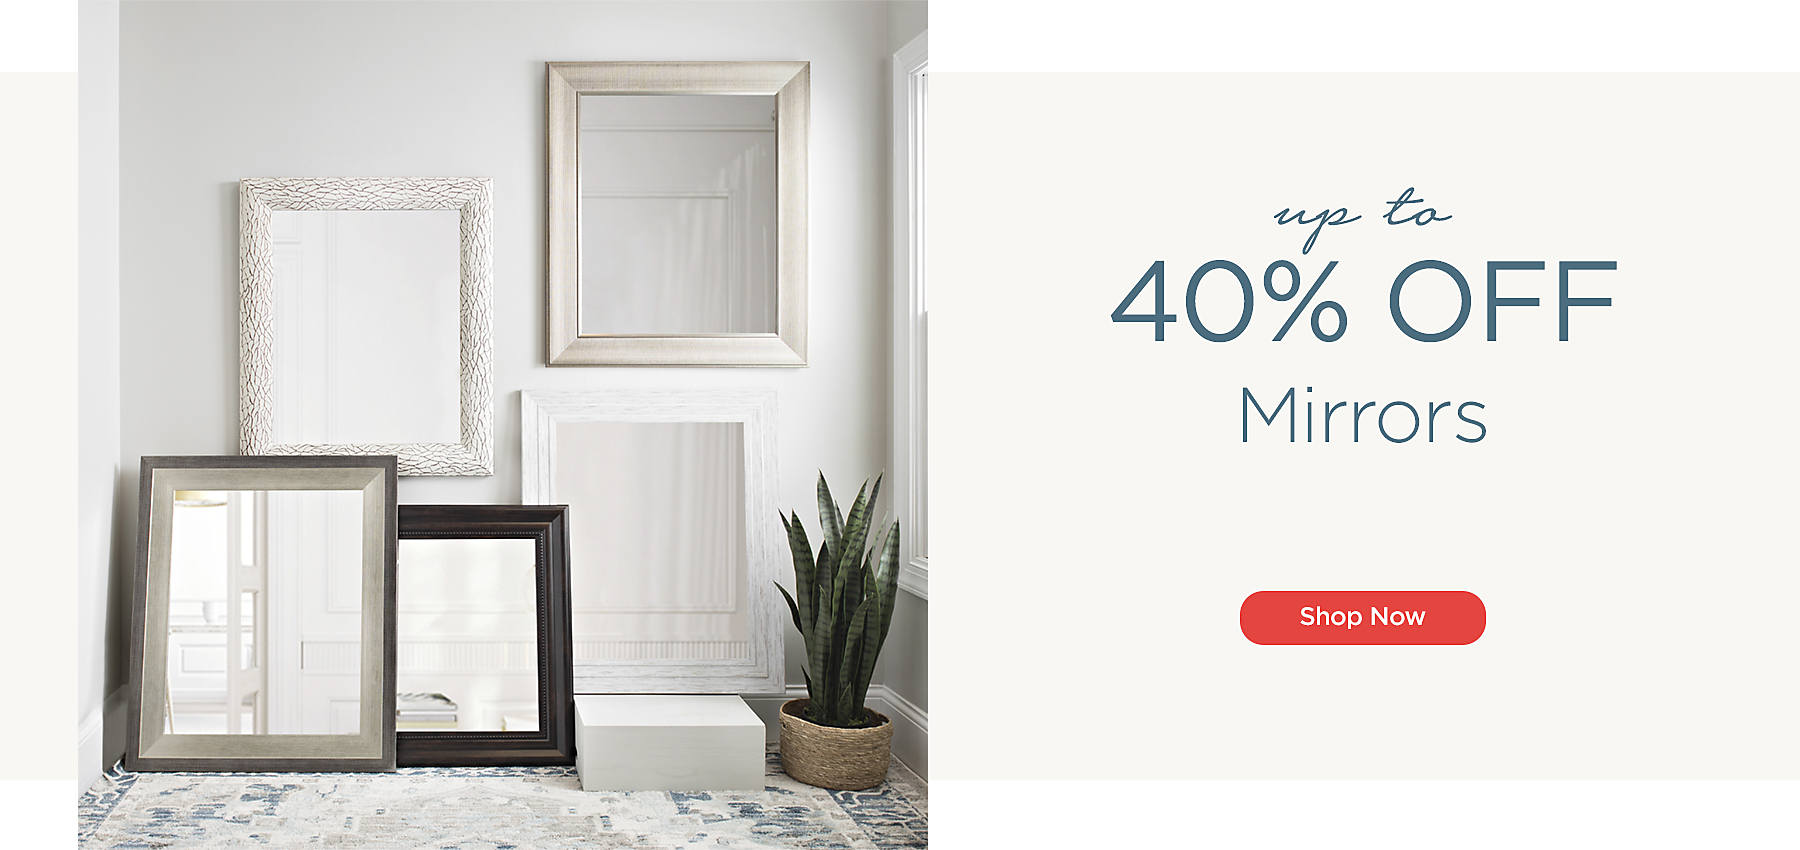 Up to 40% Off Mirrors -  Shop Now